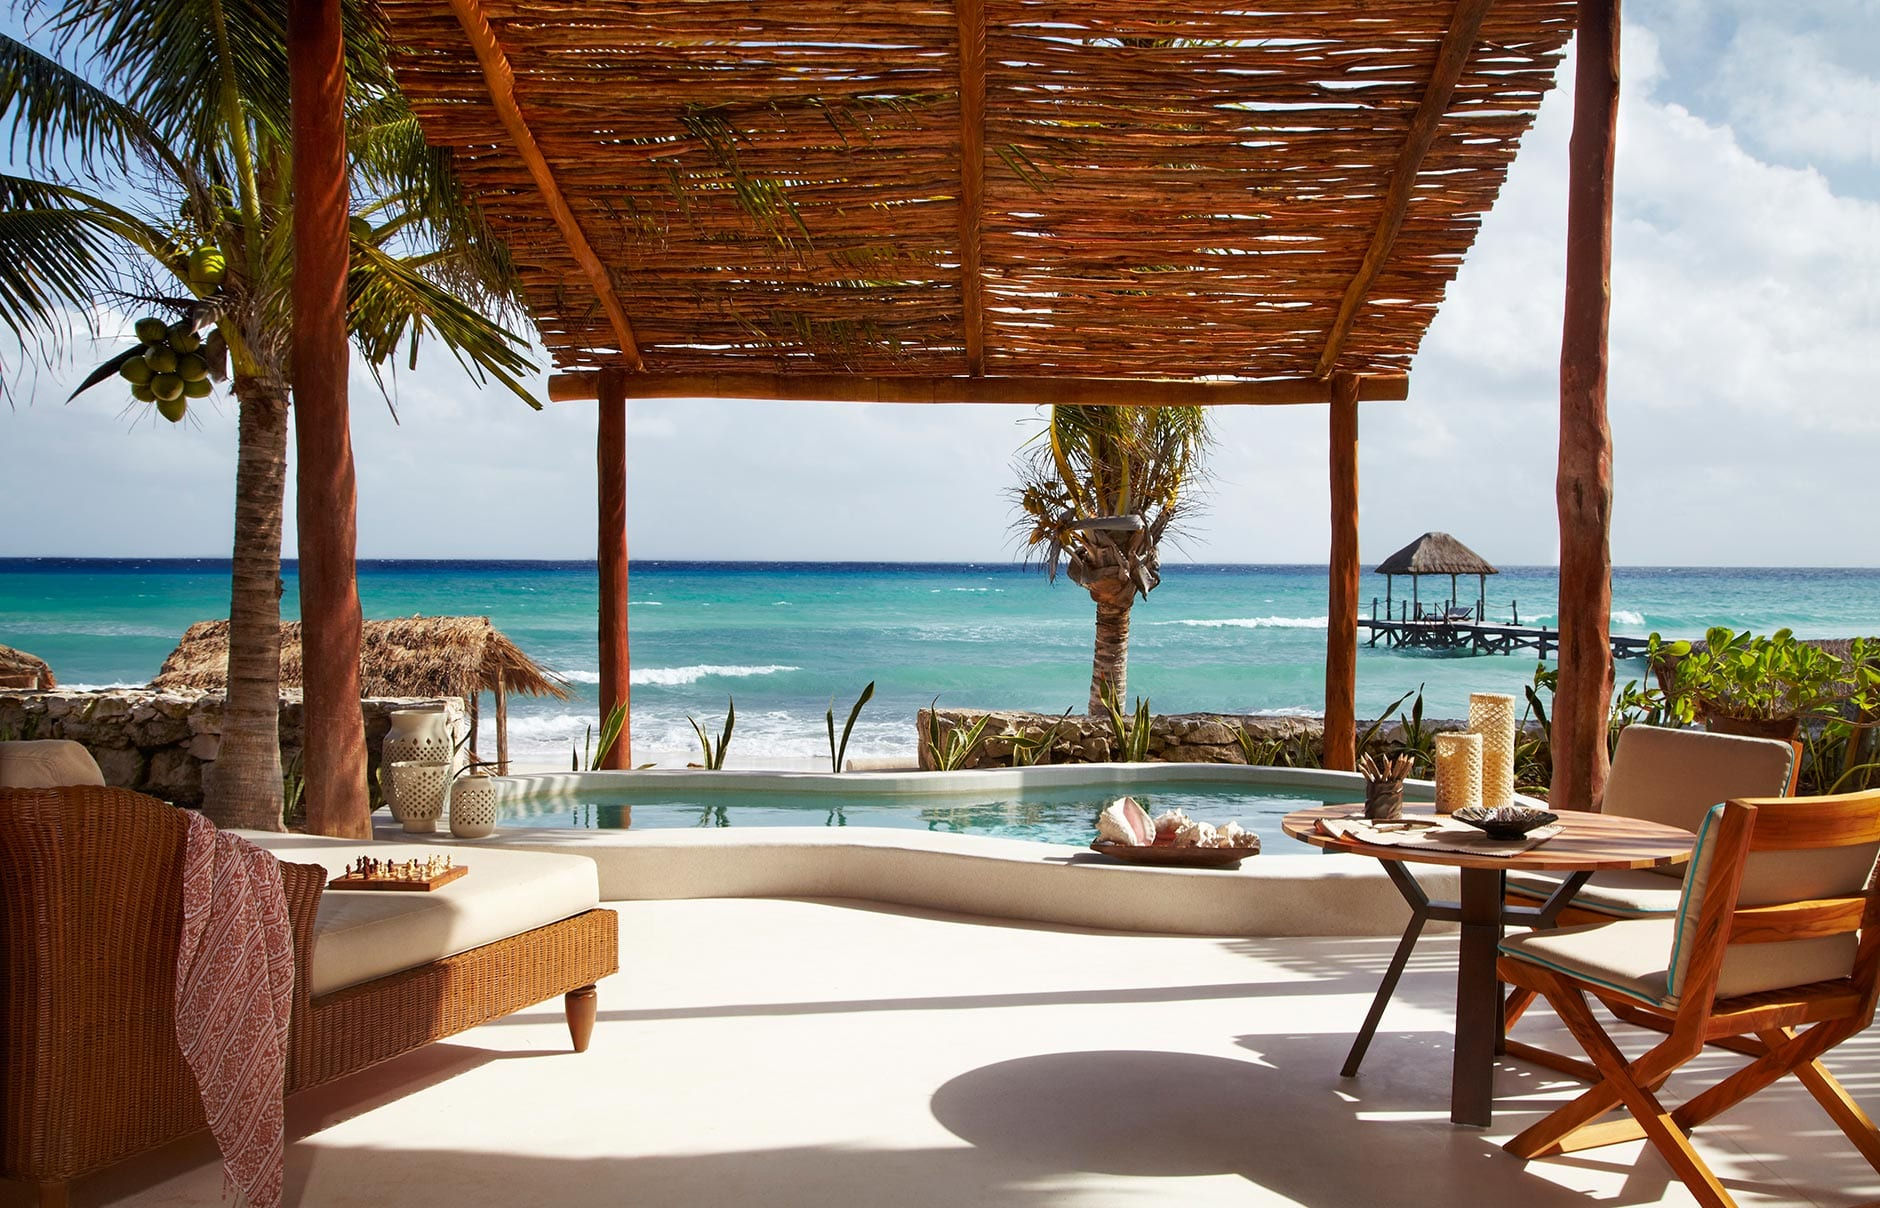 Viceroy Riviera Maya, Playa del Carmen, Mexico. Hotel Review by TravelPlusStyle. Photo © Viceroy Hotel Group